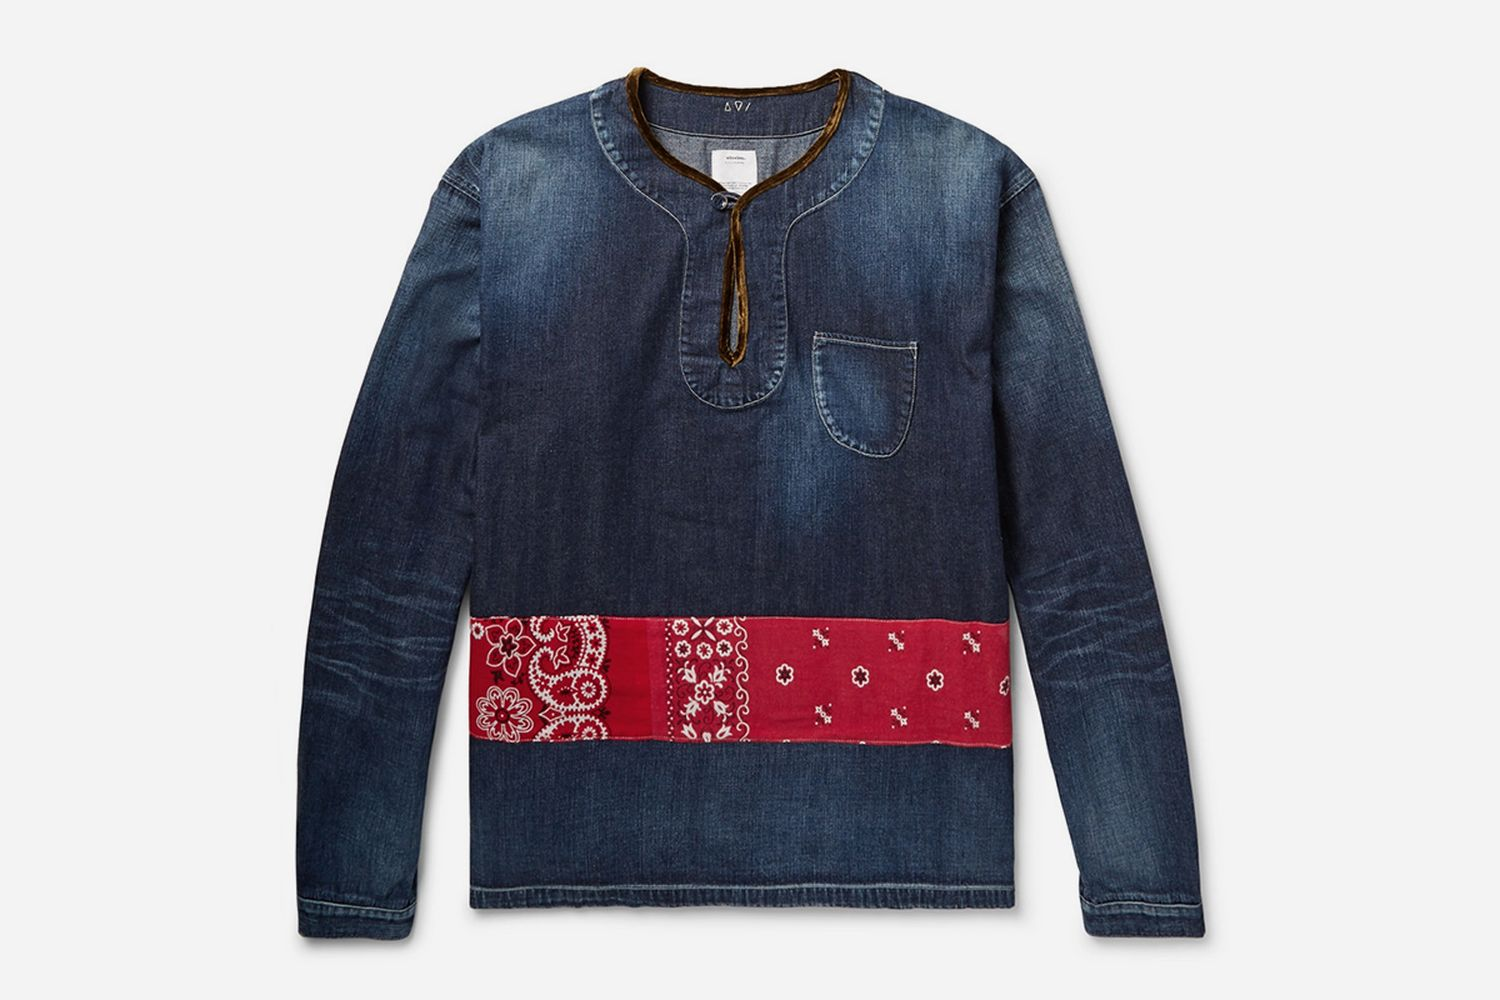 Velvet-Trimmed Panelled Denim Shirt